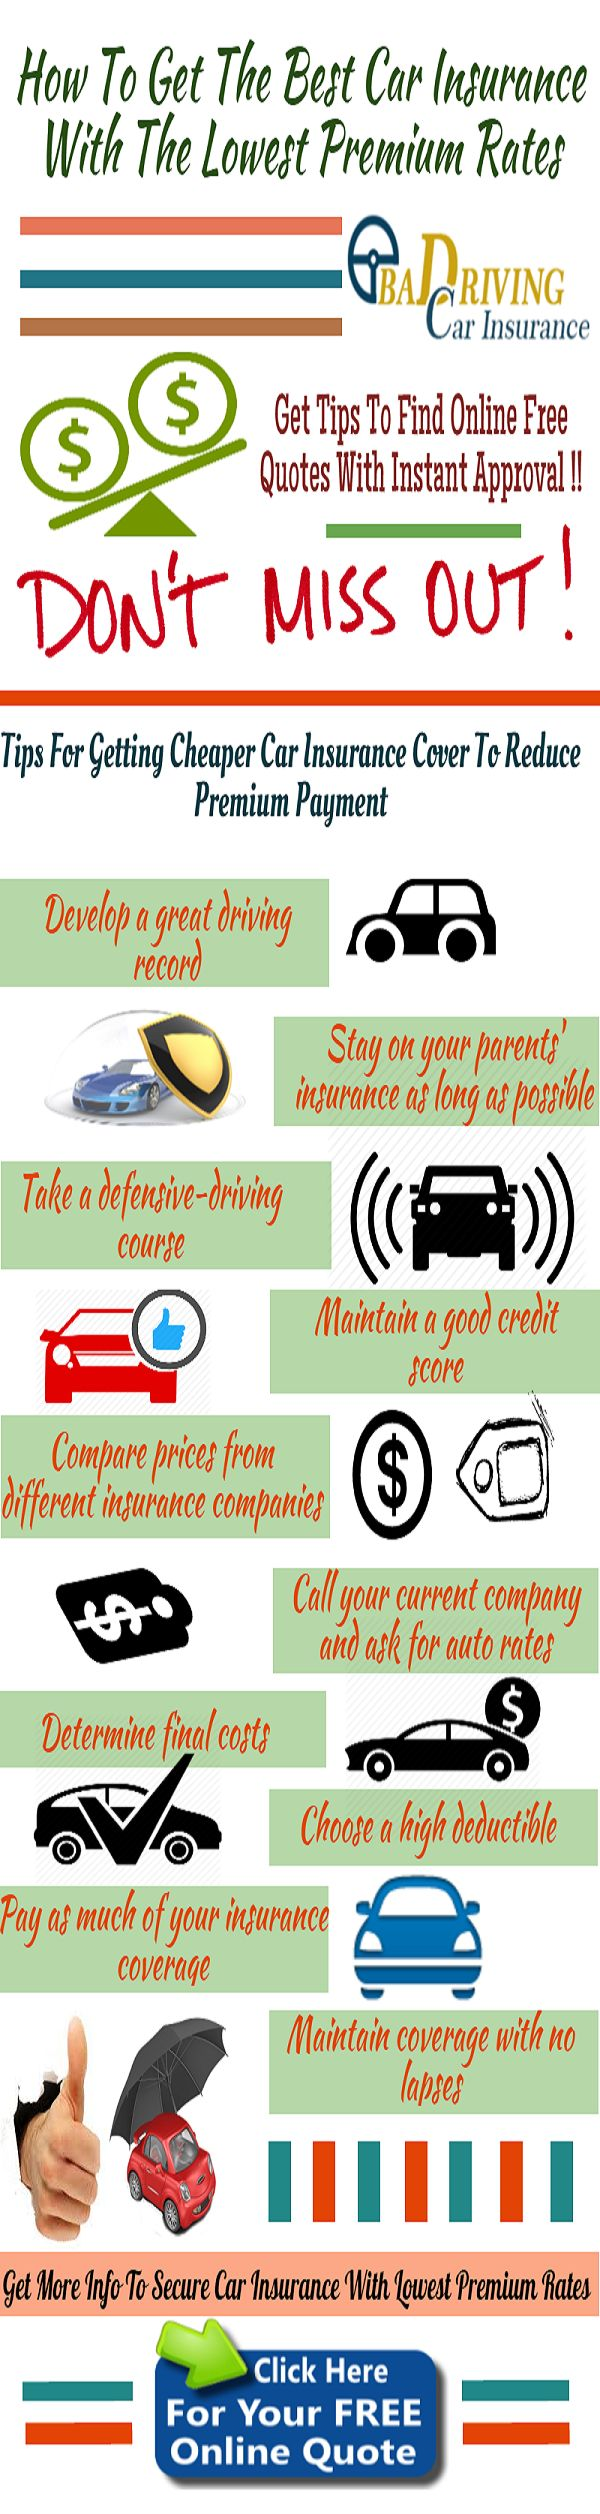 Car Insurance Free Quote 9 Best Carauto Insurance Infographic Images On Pinterest